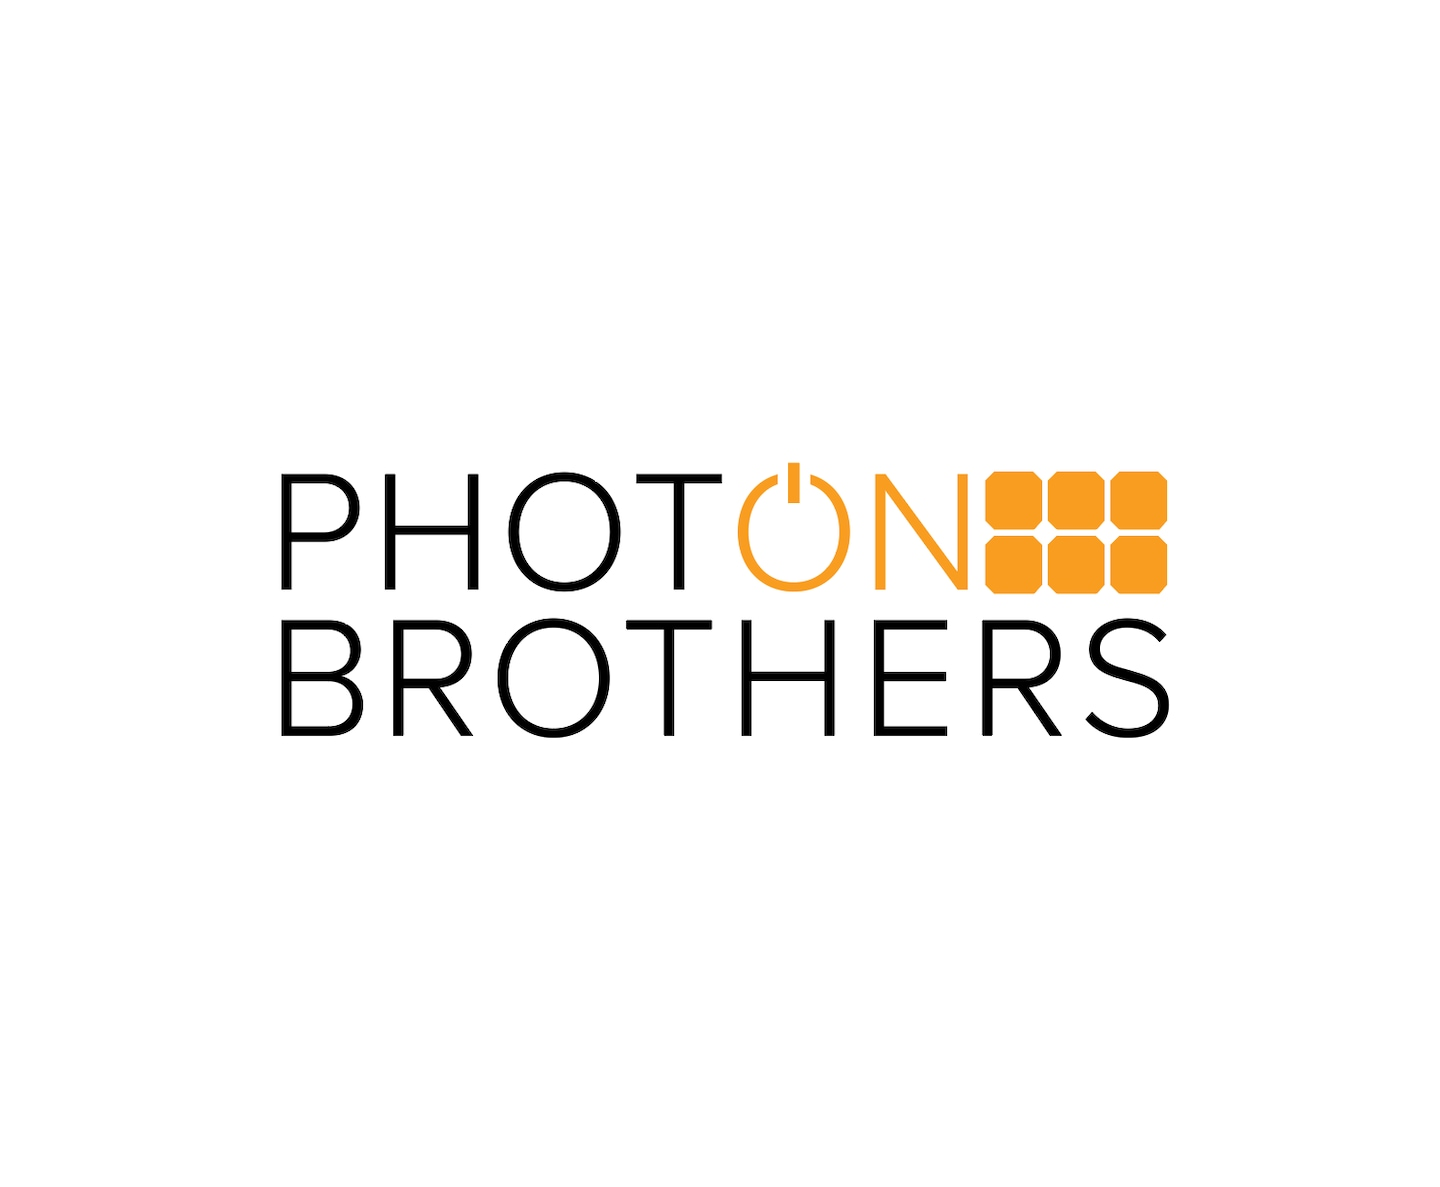 Photon Brothers Inc